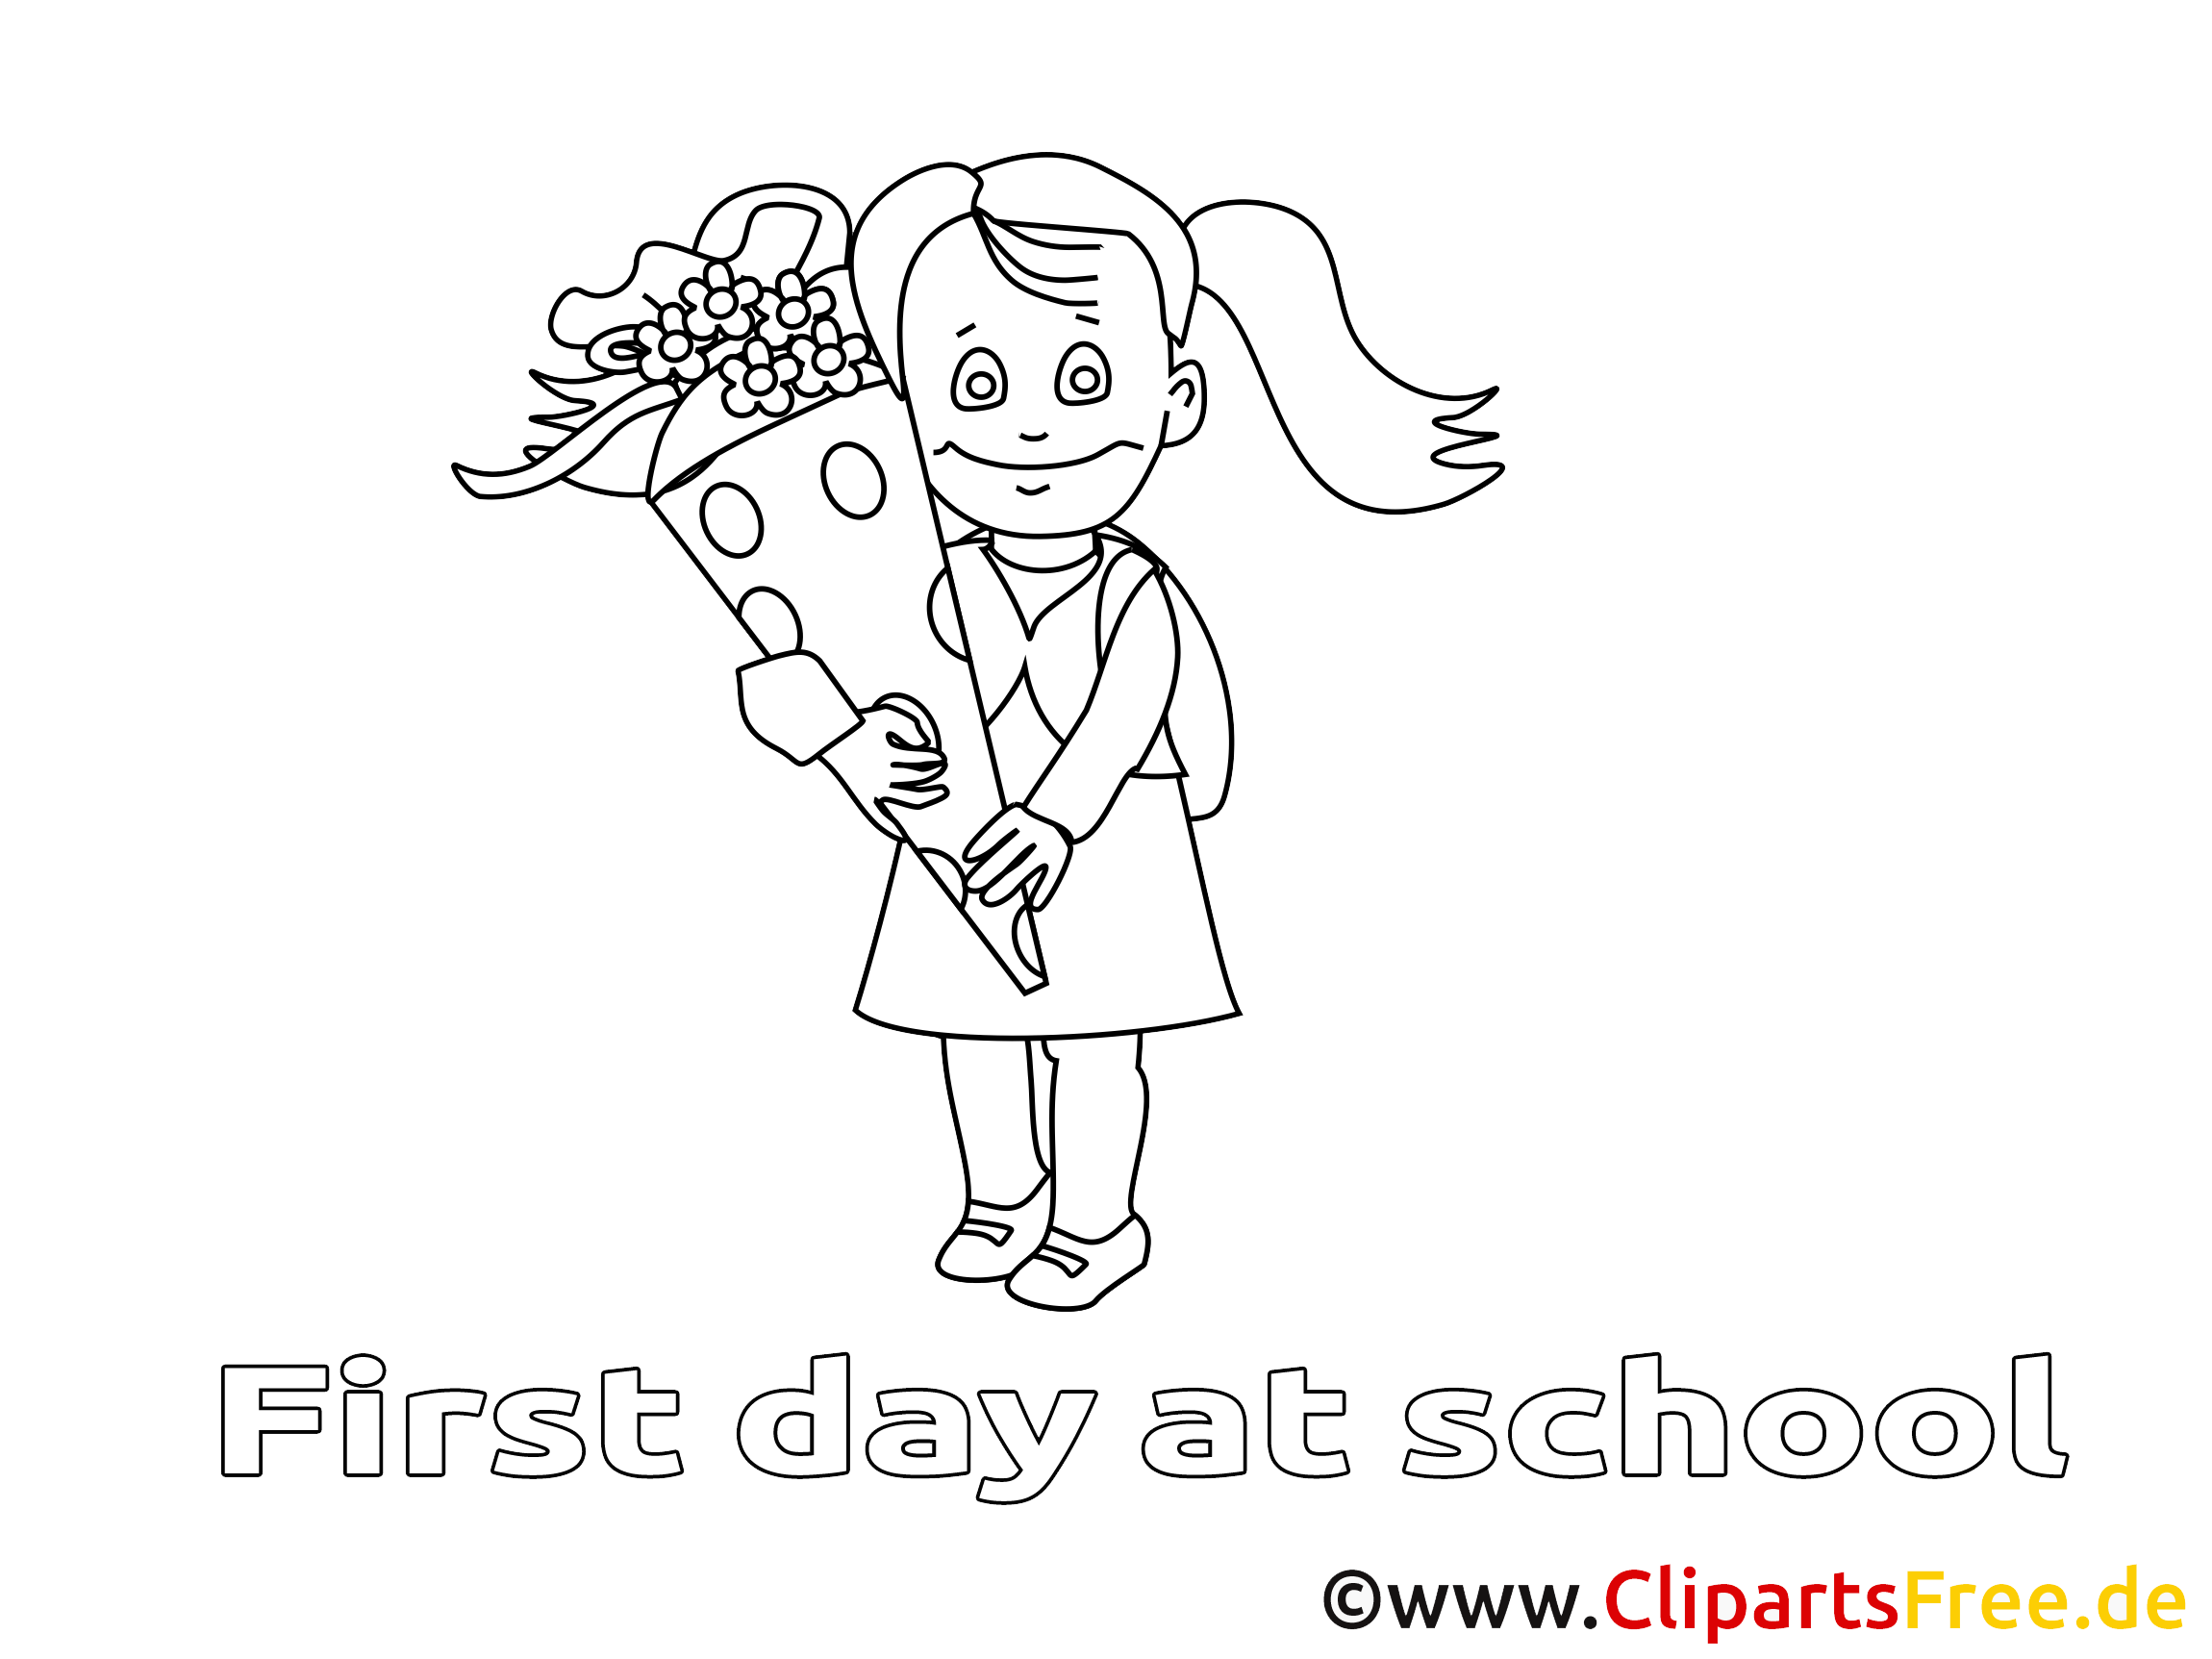 Bouquet clipart – Élémentaire dessins à colorier